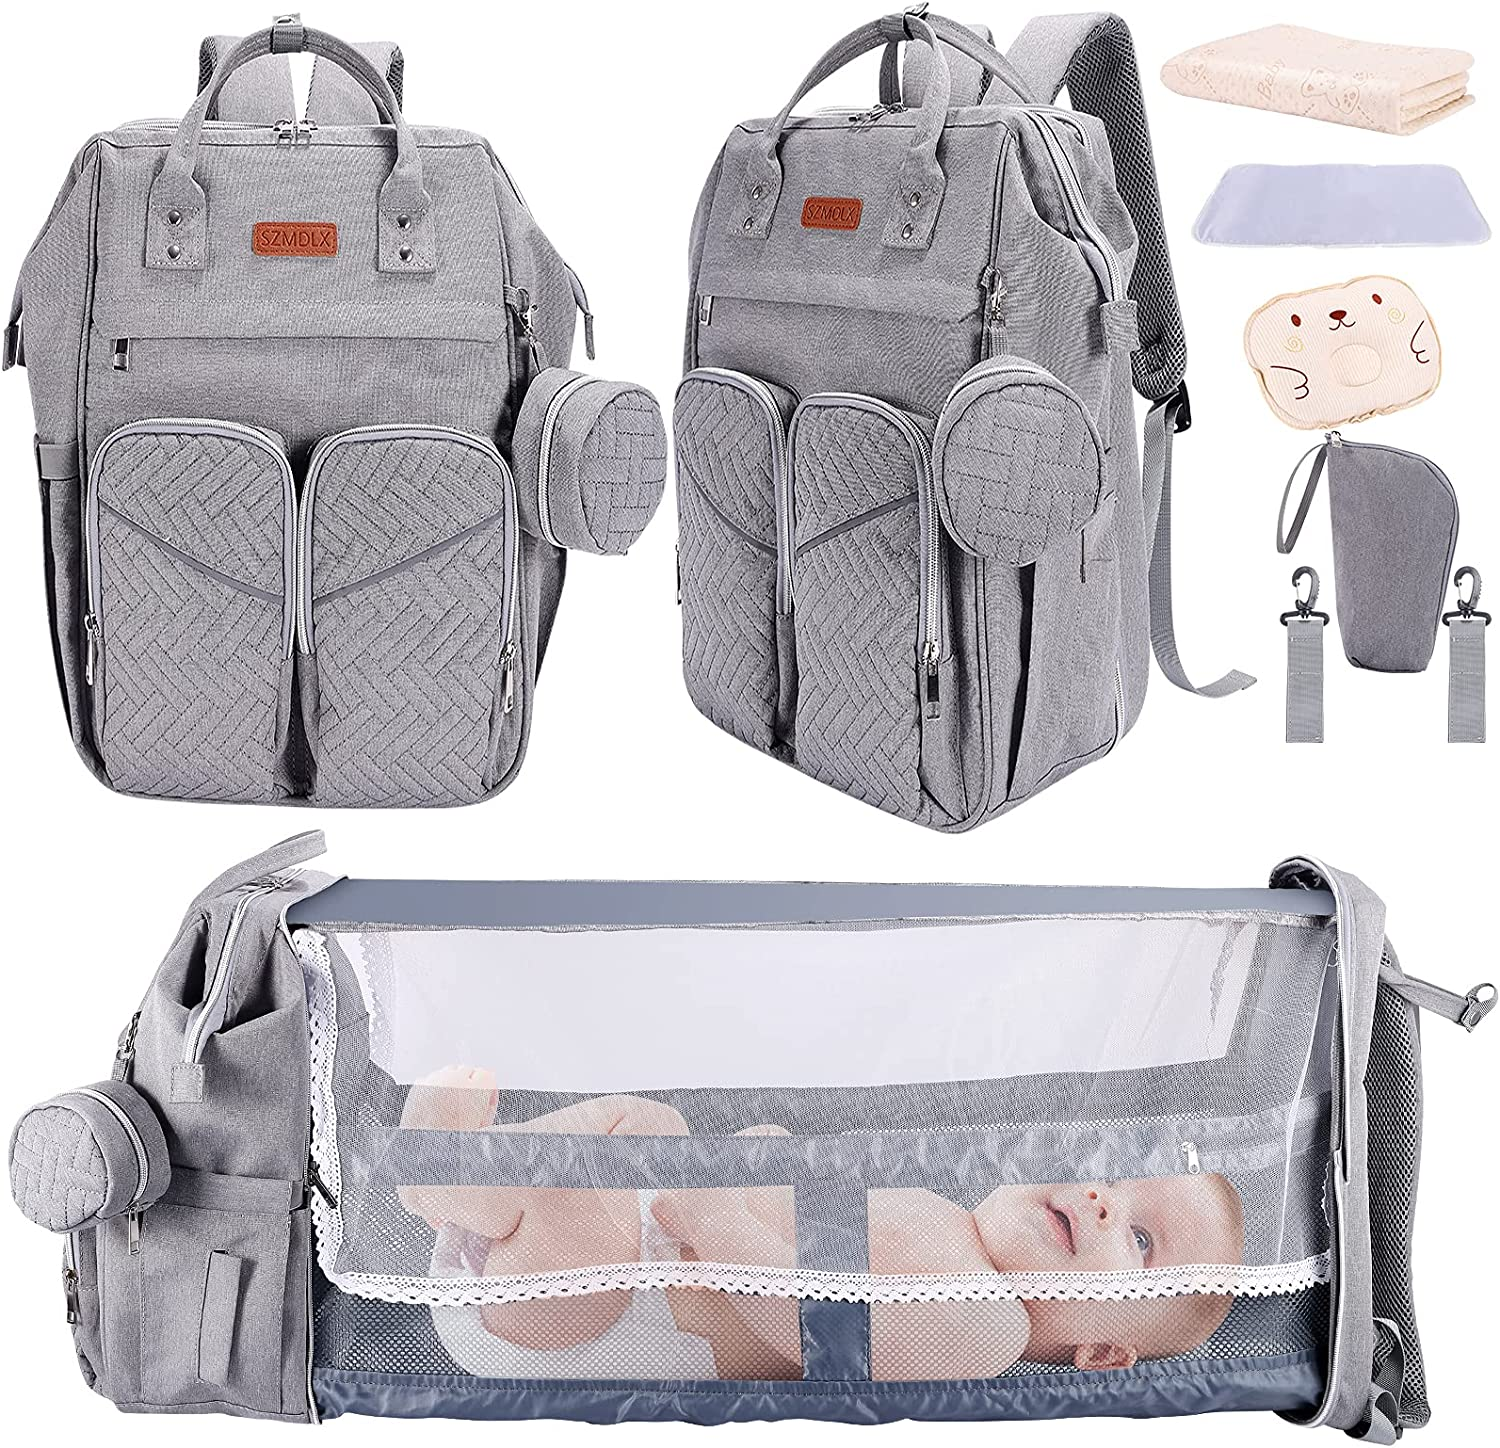 8 in 1 Baby Diaper Bag Backpack with Changing Station Diaper Bags for Baby Bags for Boys Girl Diper Bag with Bassinet Bed Mat Pad Men Dad Mom Travel Waterproof Stroller Straps Large Capacity (Grey)